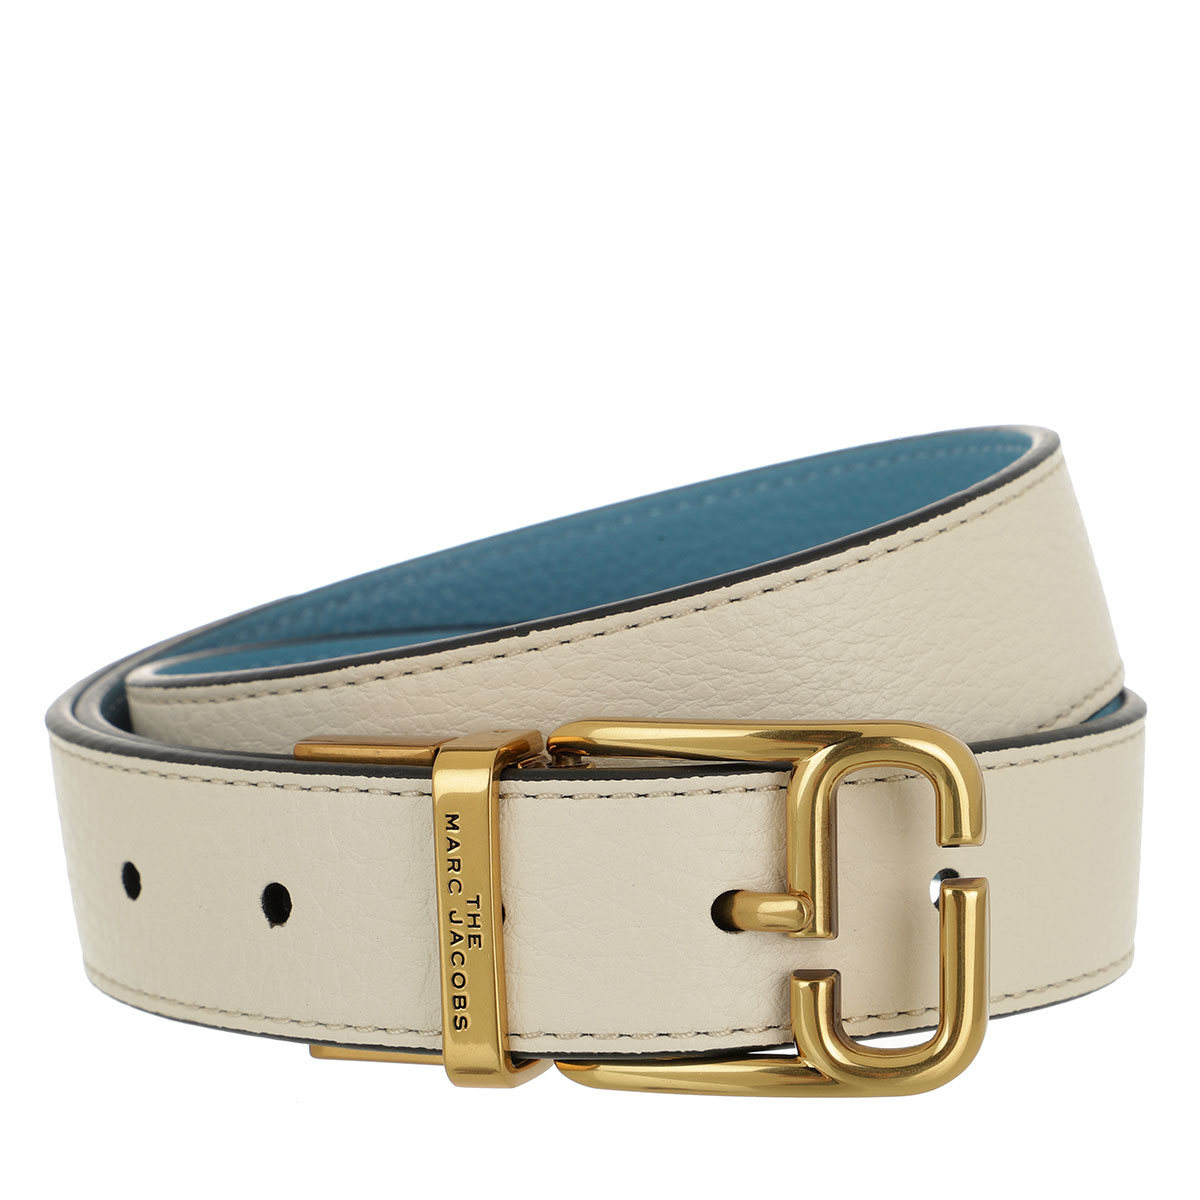 Gürtel, Marc Jacobs, The J Link Reversible Belt Leather Ivory/ Country Blue